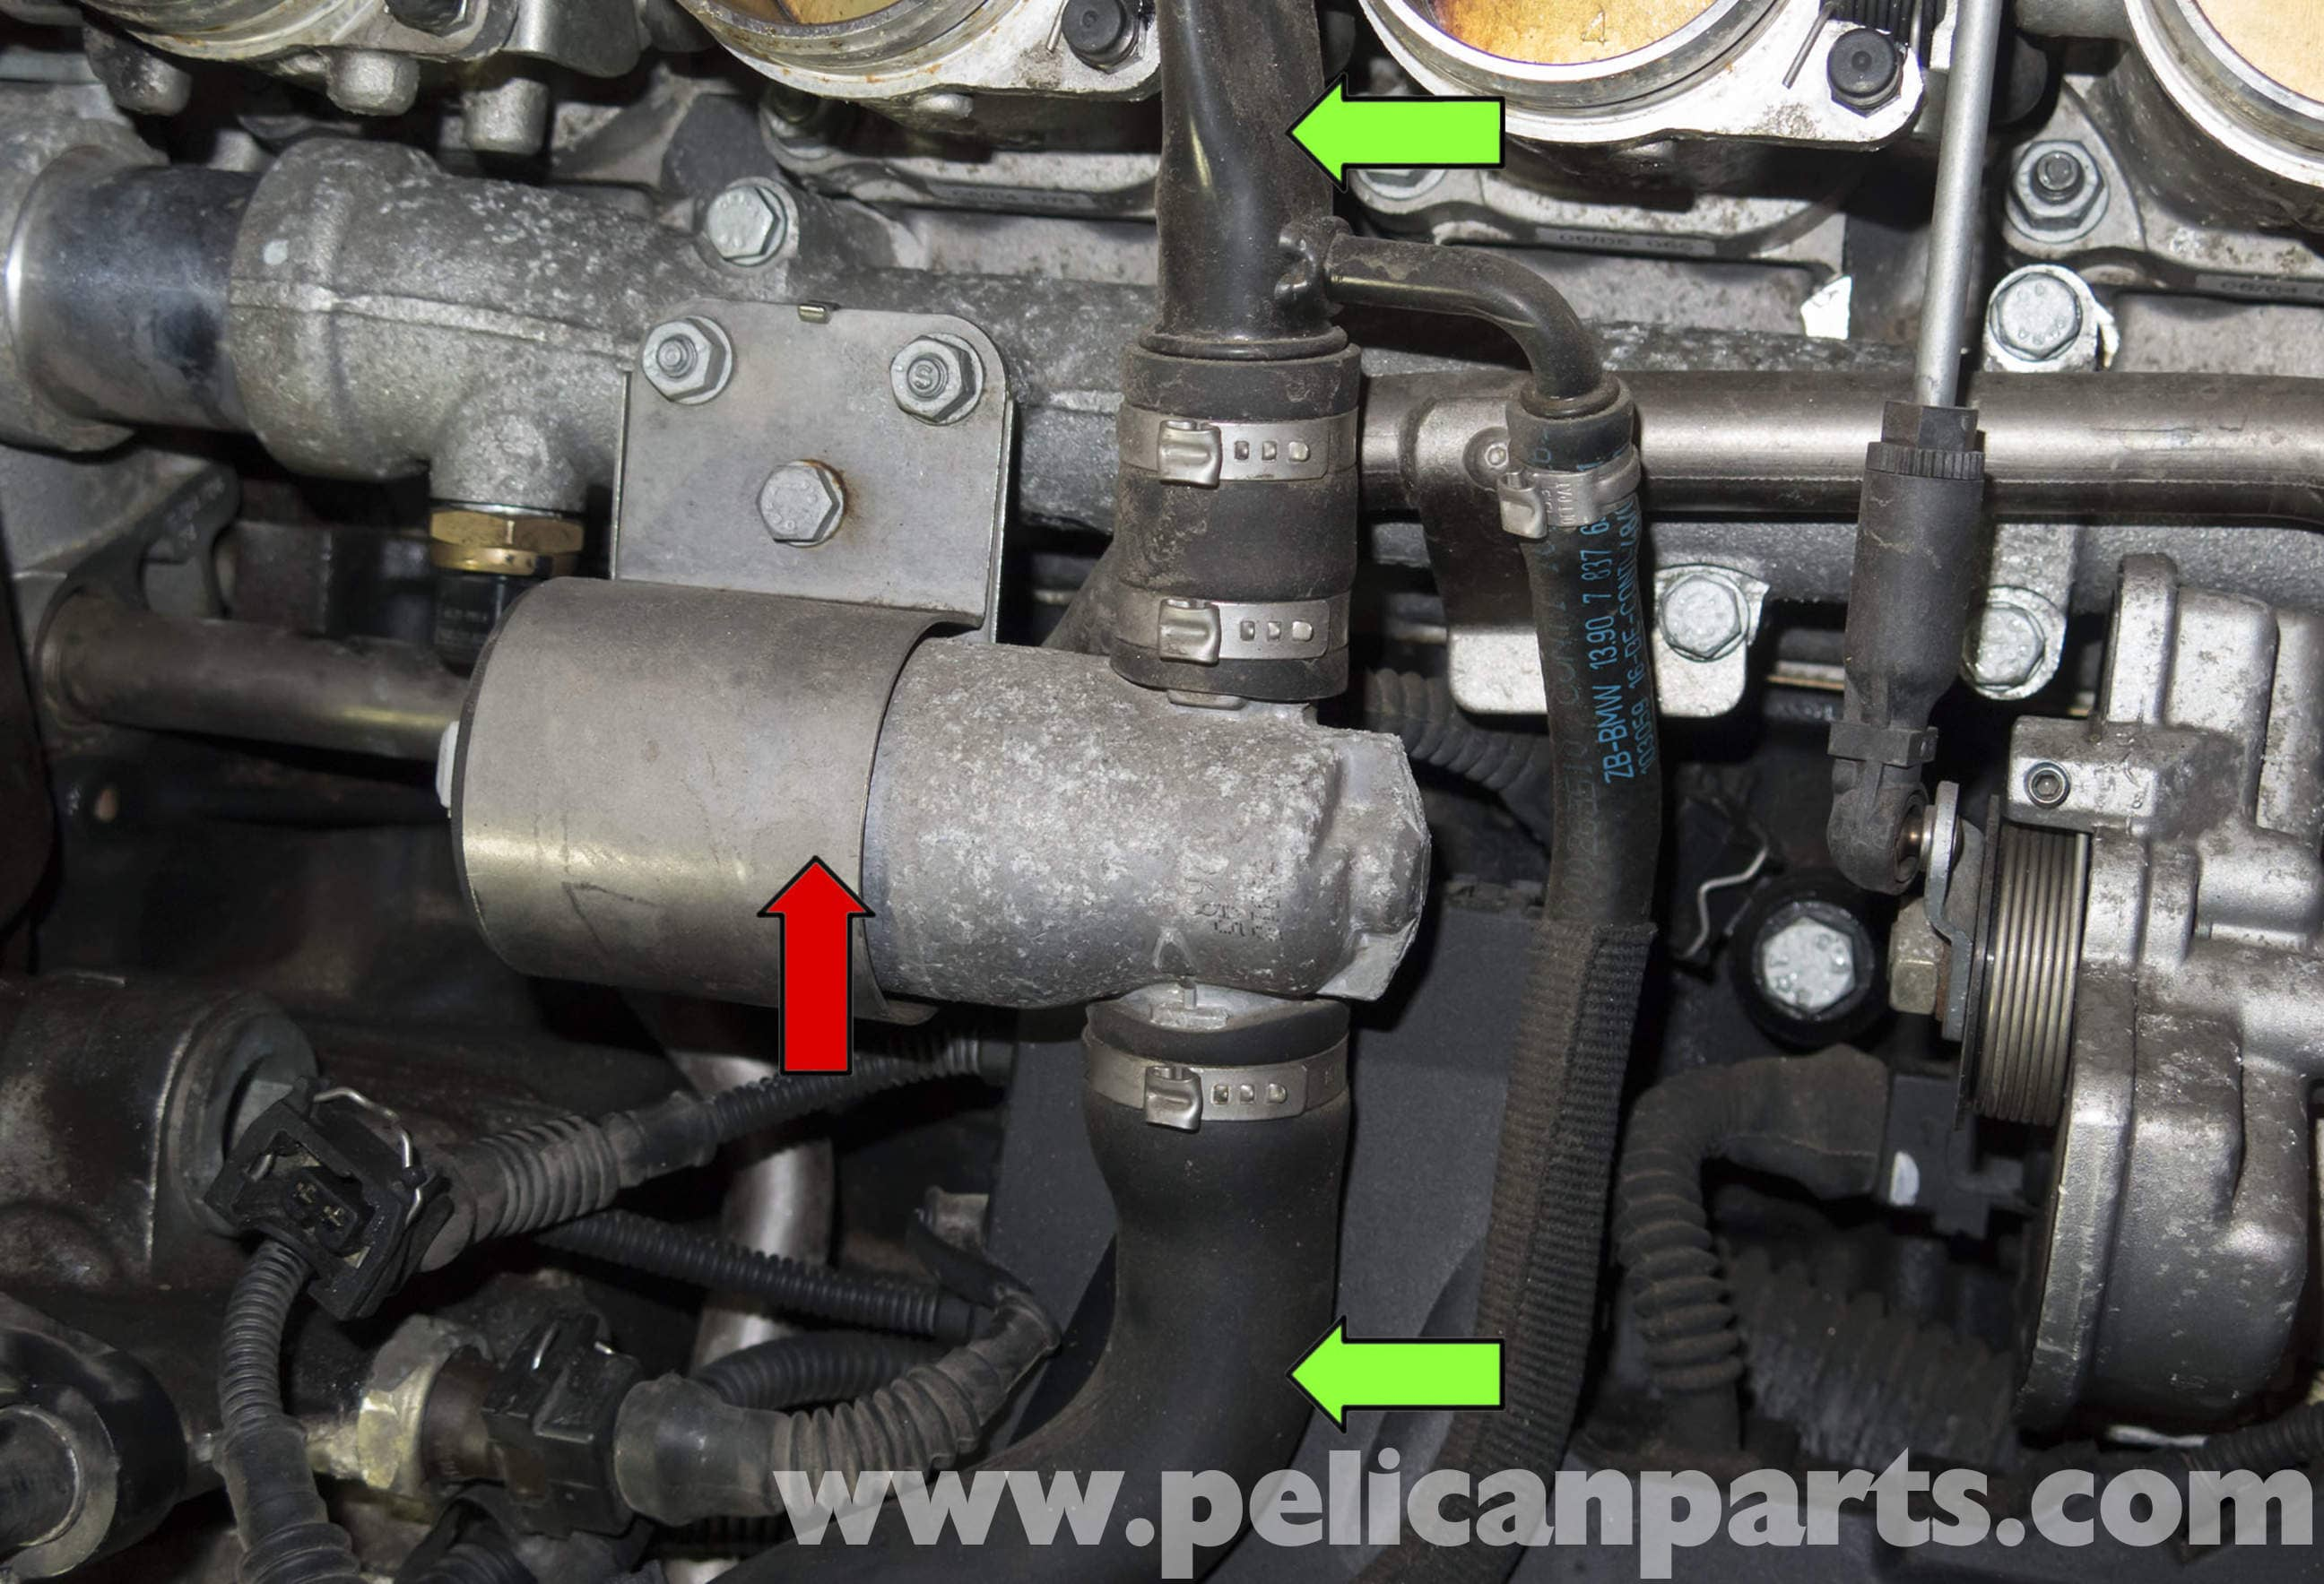 Bmw Z4 M S54 6 Cylinder Idle Control Valve Replacement 2003 2006 Pelican Parts Diy